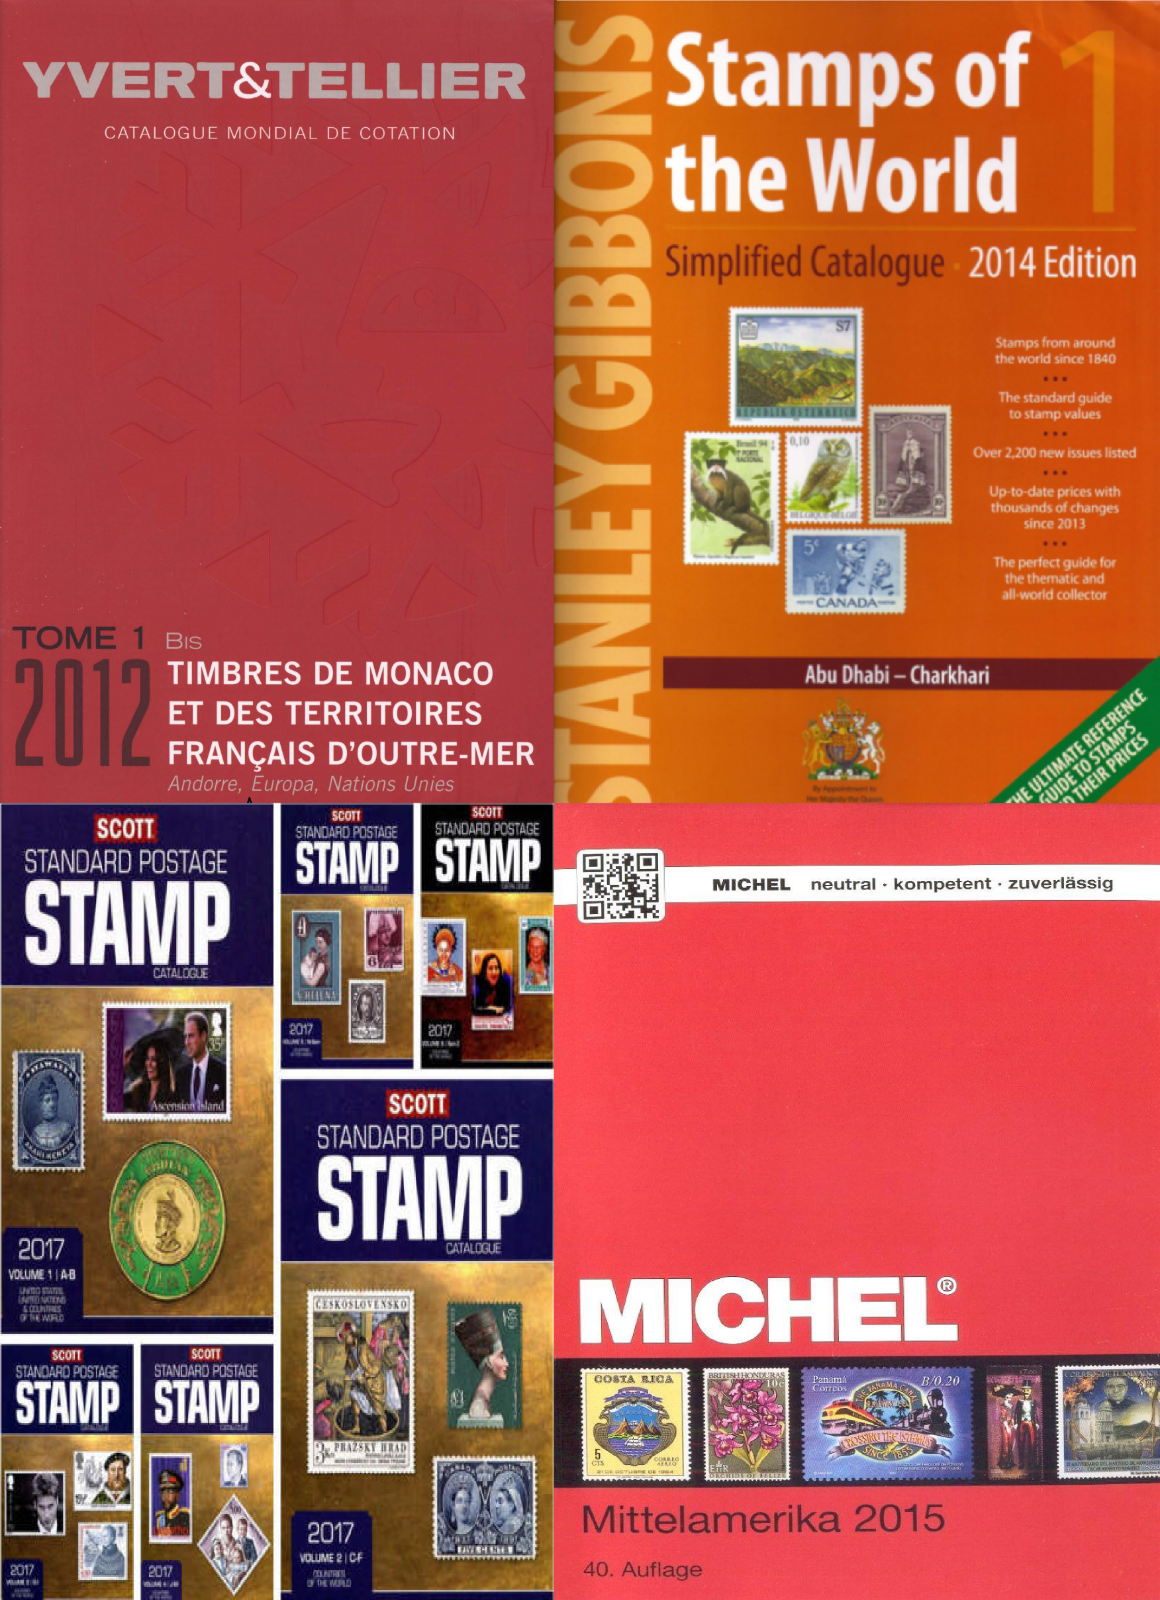 yvert tellier stamp catalogue download